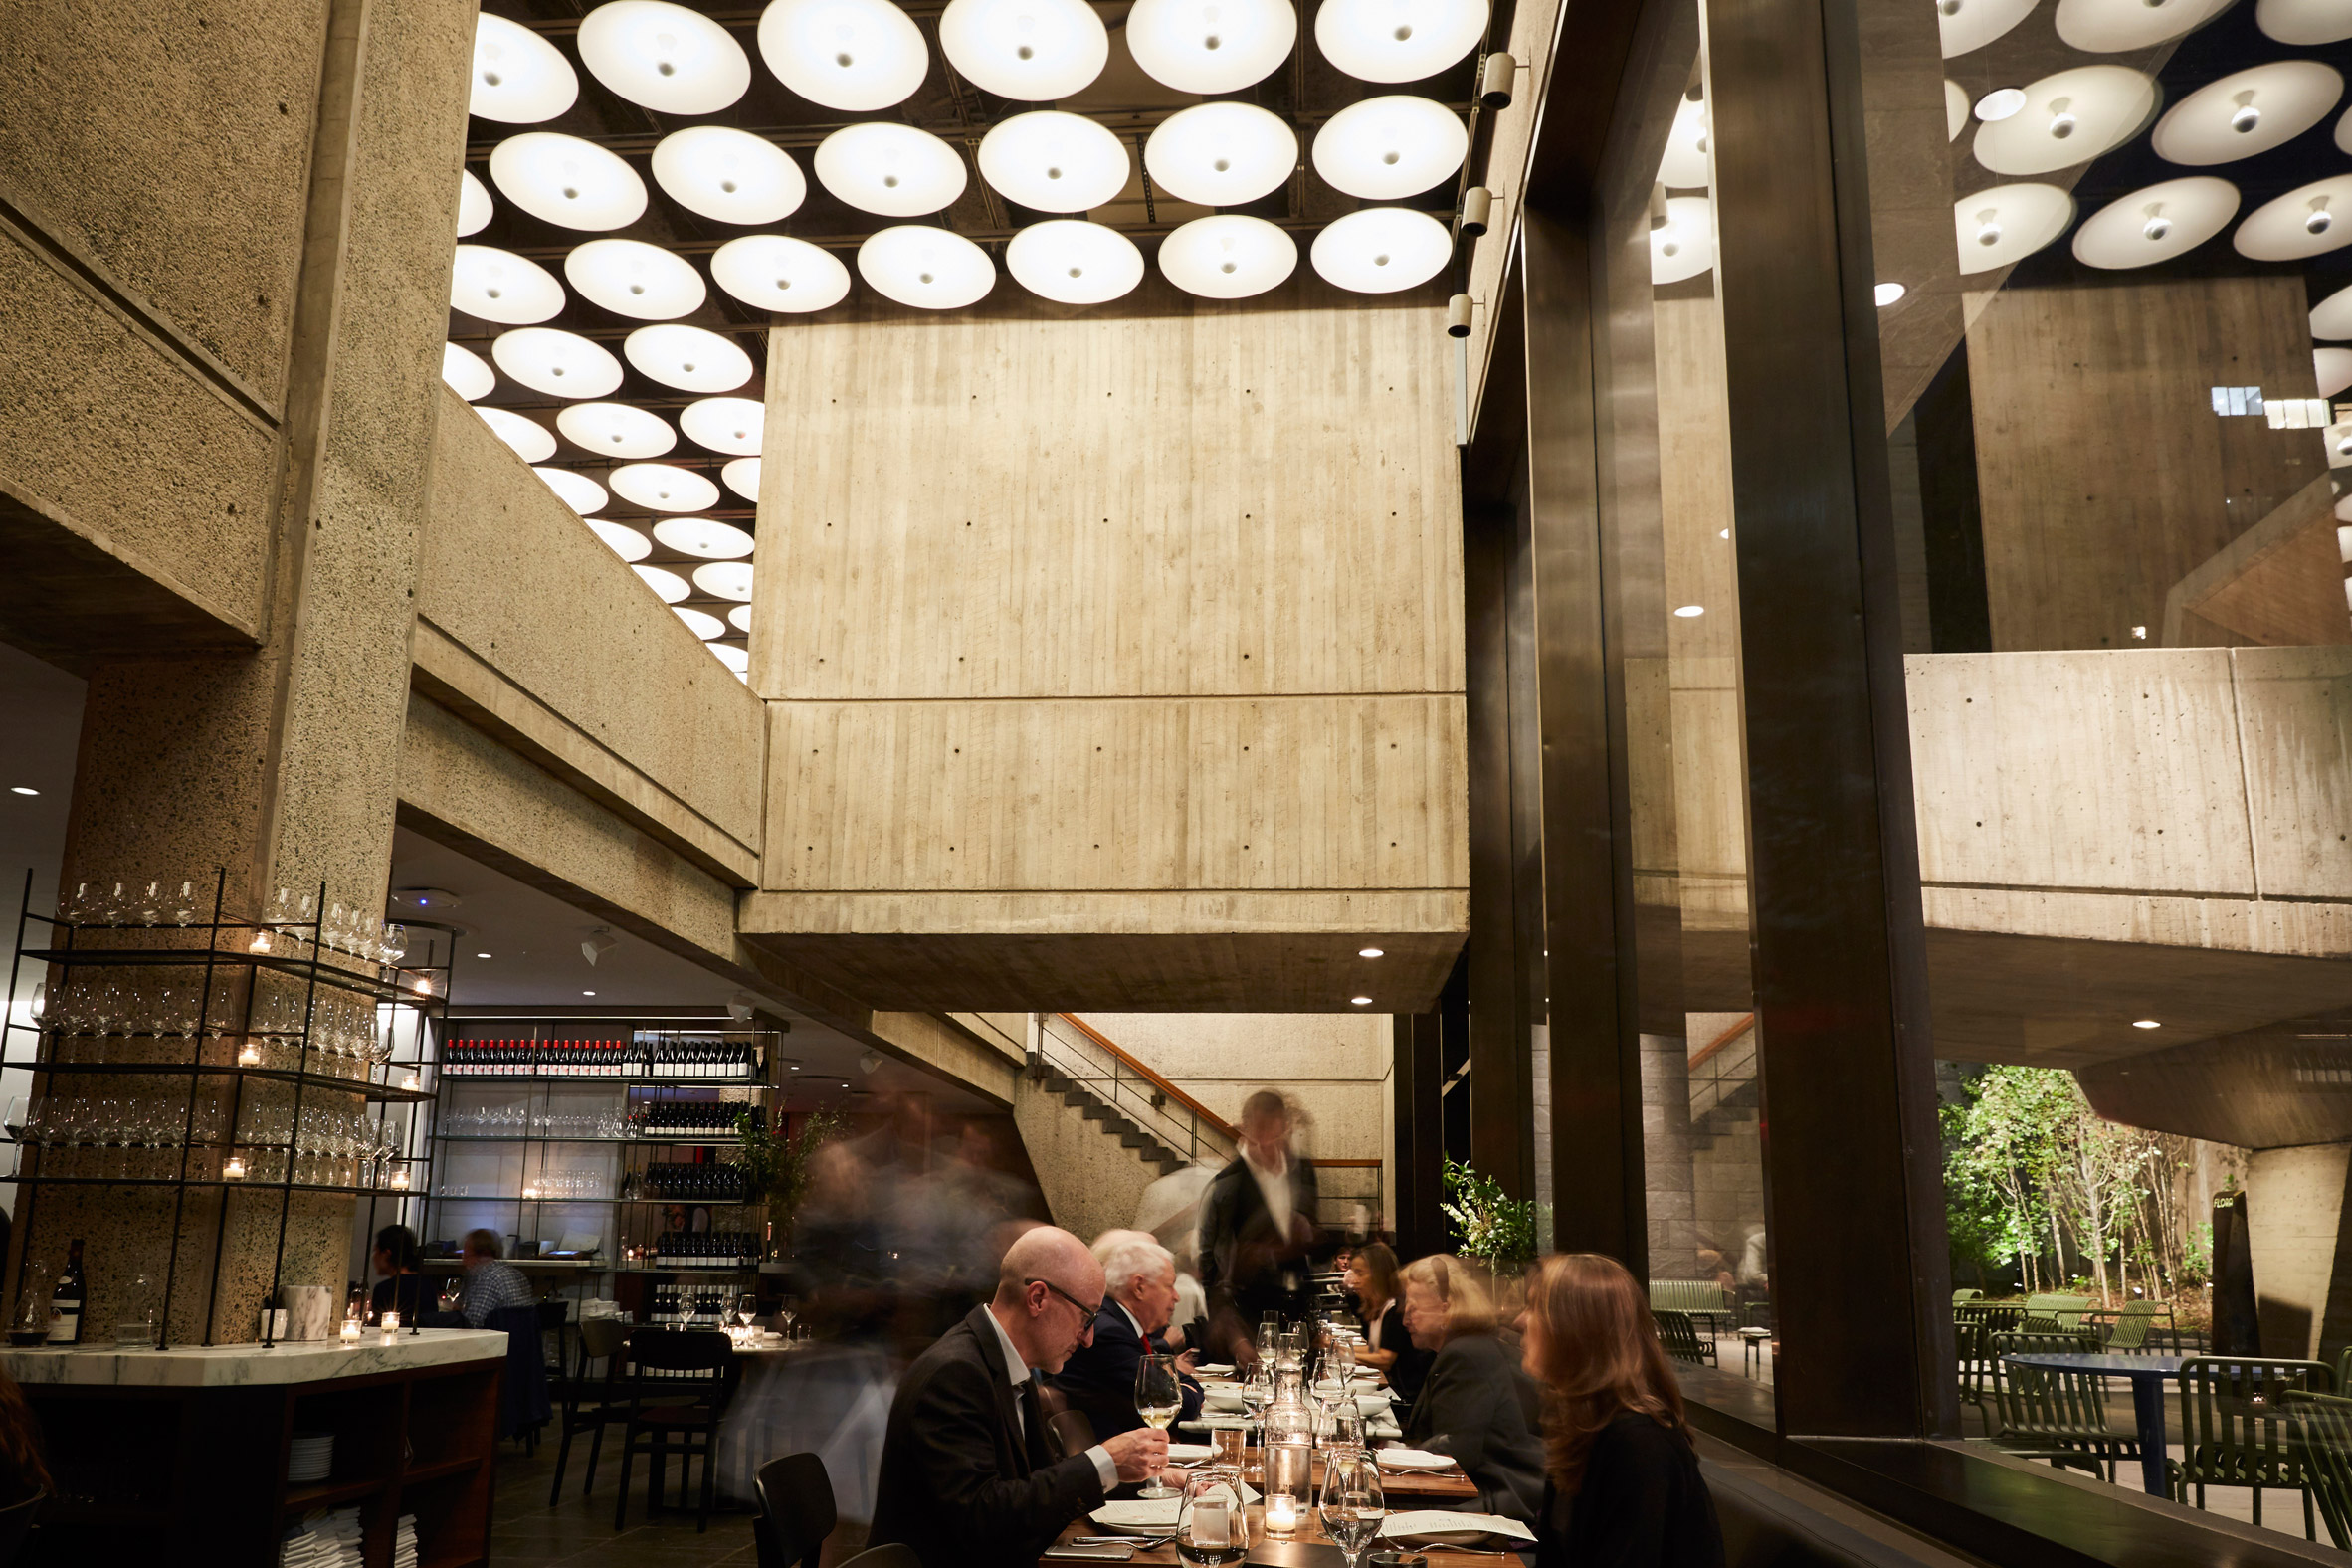 flora-bar-cafe-restaurant-interior-design-beyer-blinder-belle-met-breuer-new-york-city-usa_dezeen_2364_col_2